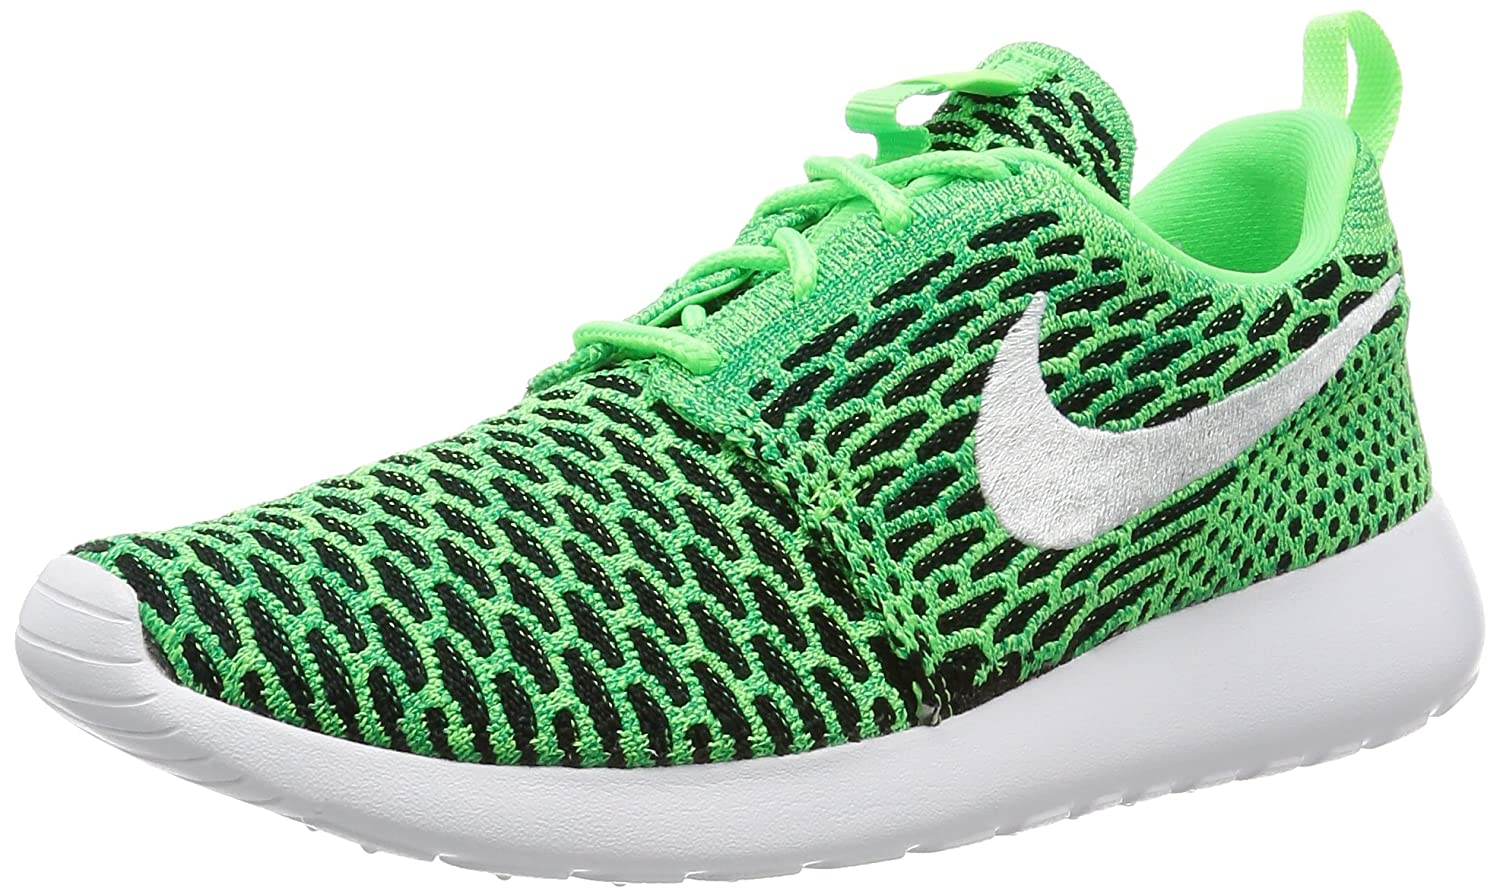 Nike Roshe One Flyknit Womens